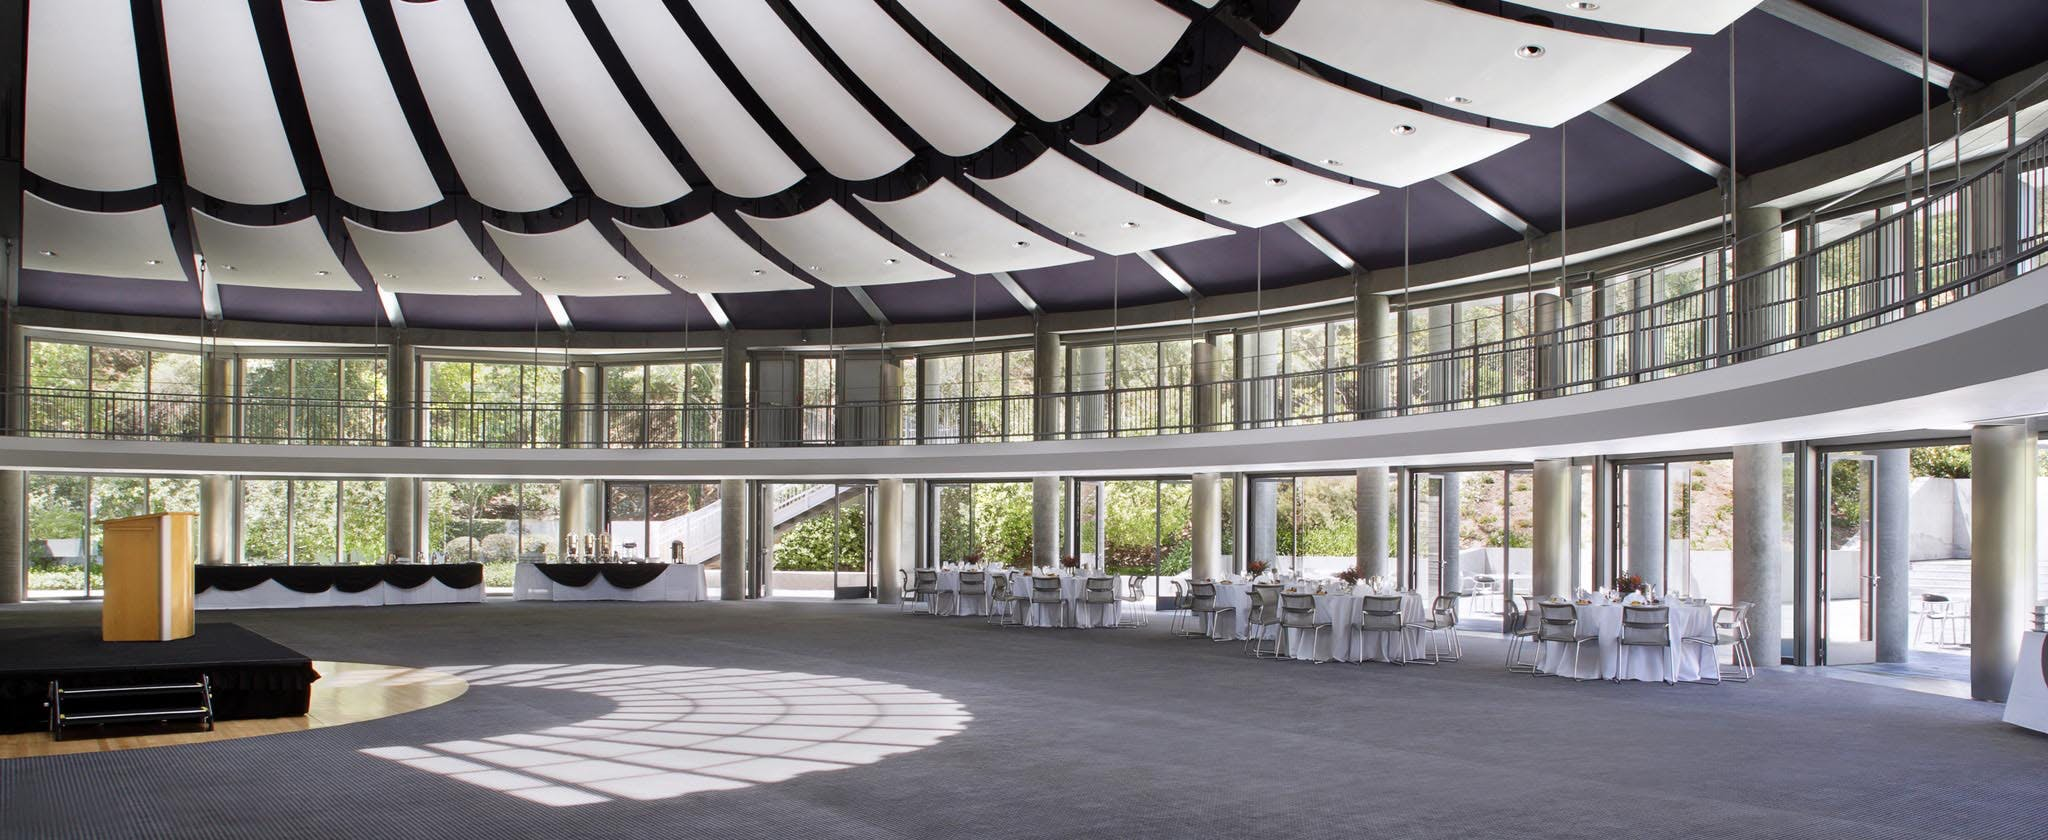 exterior commercial opening glass walls in religious institution for fresh air and daylight